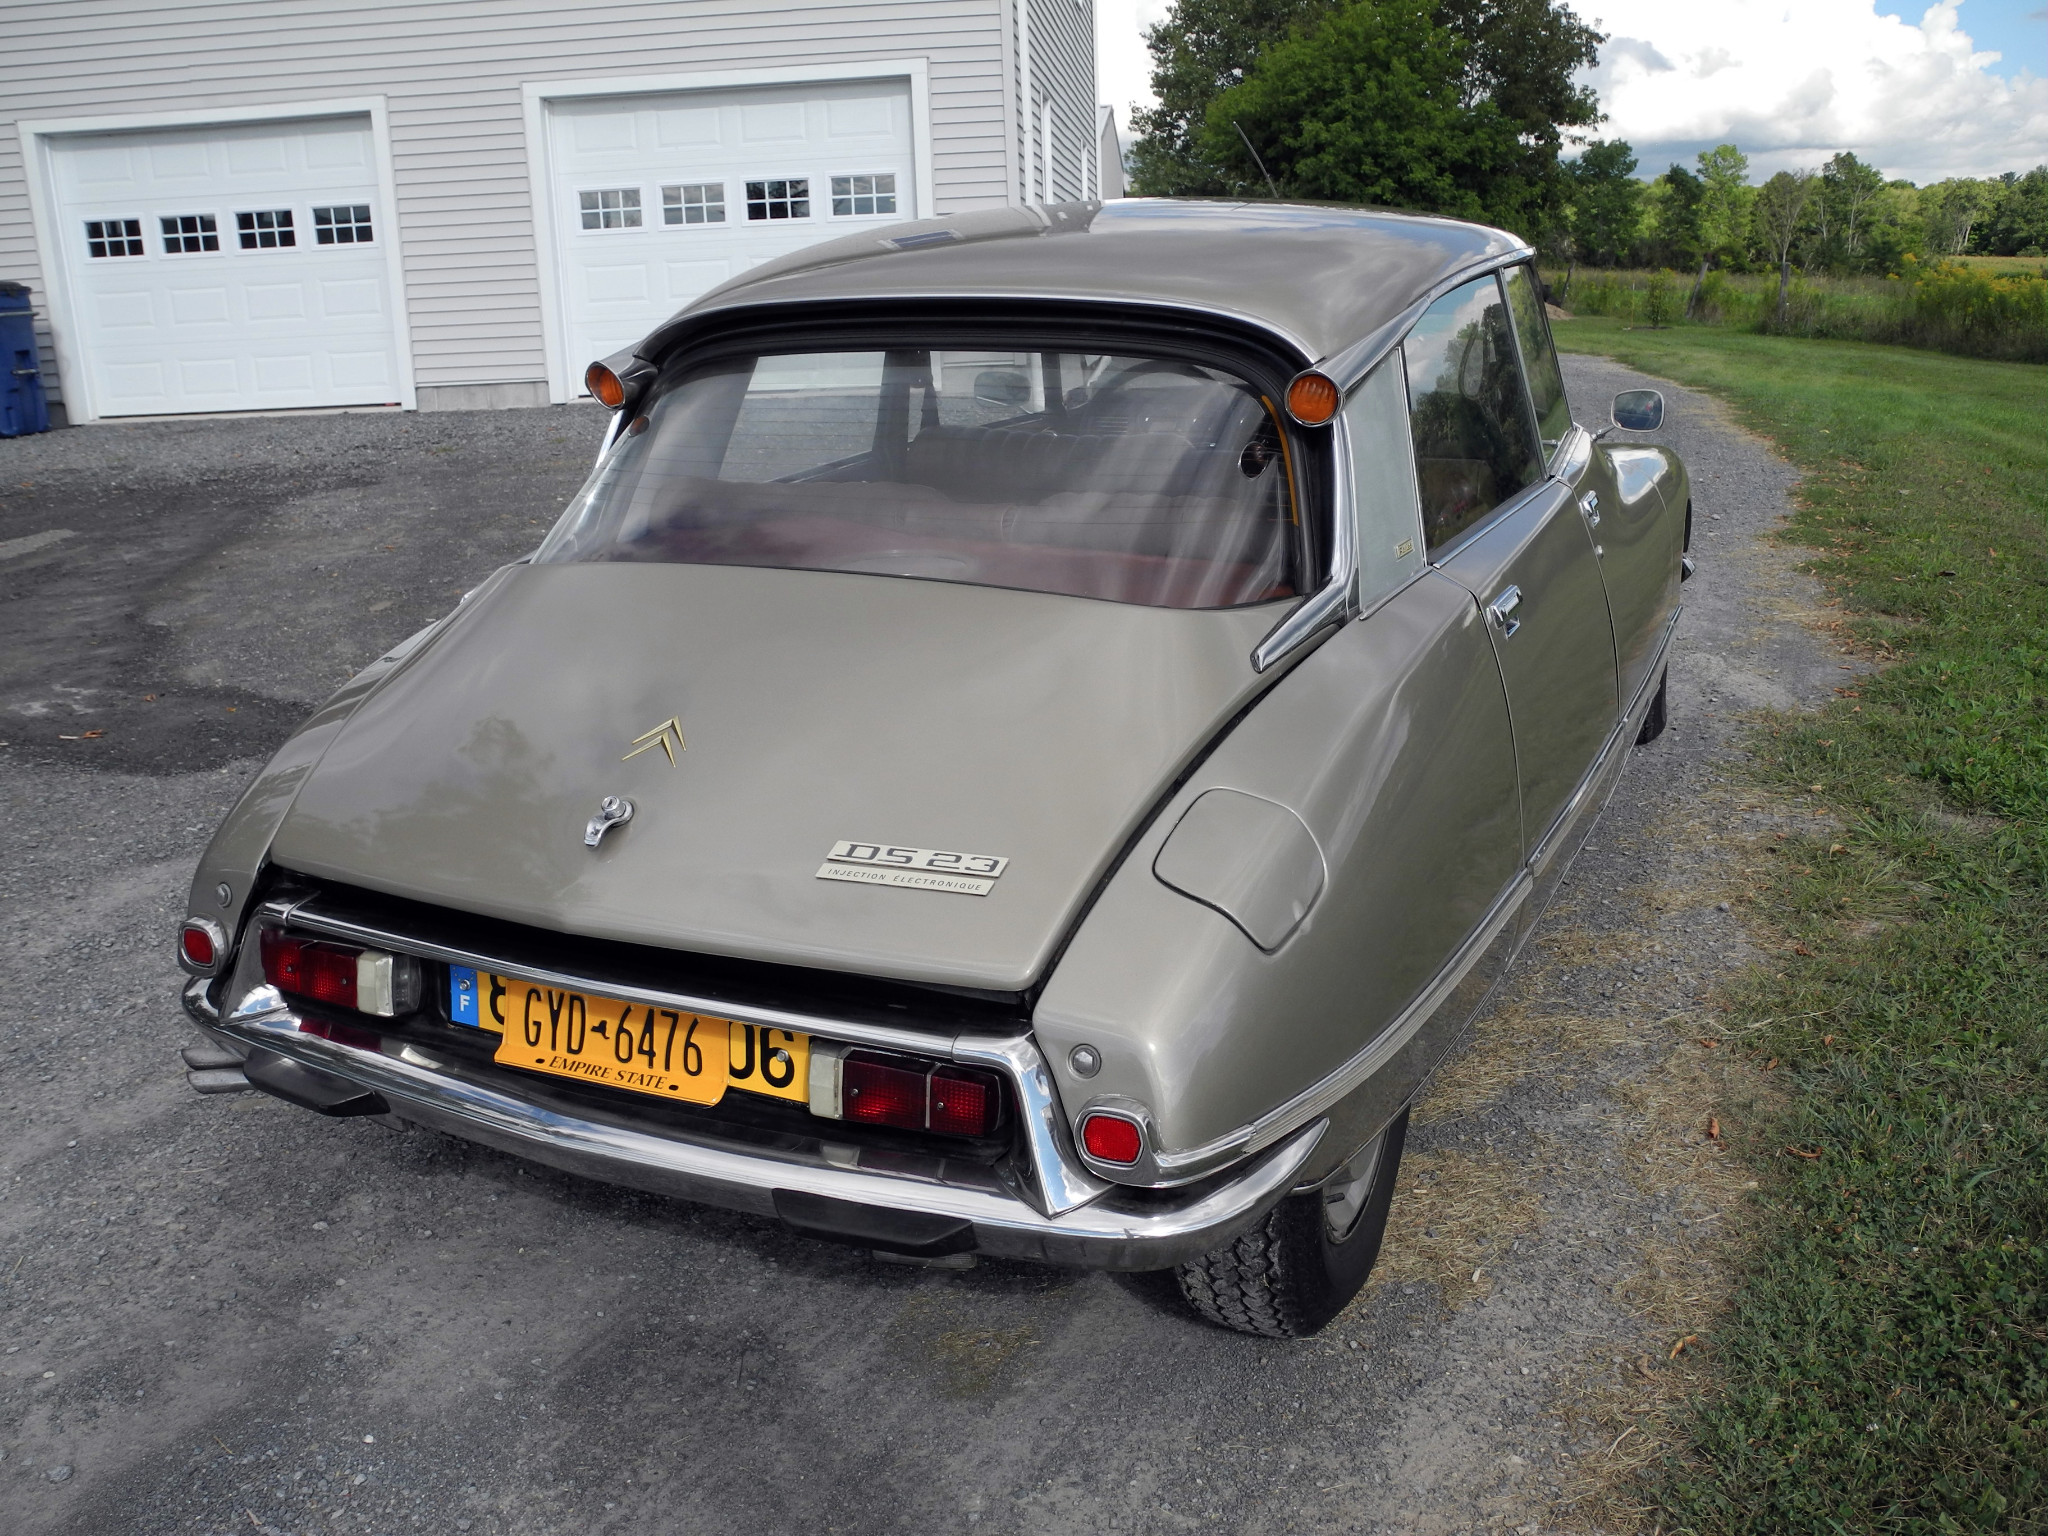 The Citroën DS pioneered high level brake lights and disc brakes before most manufacturers.